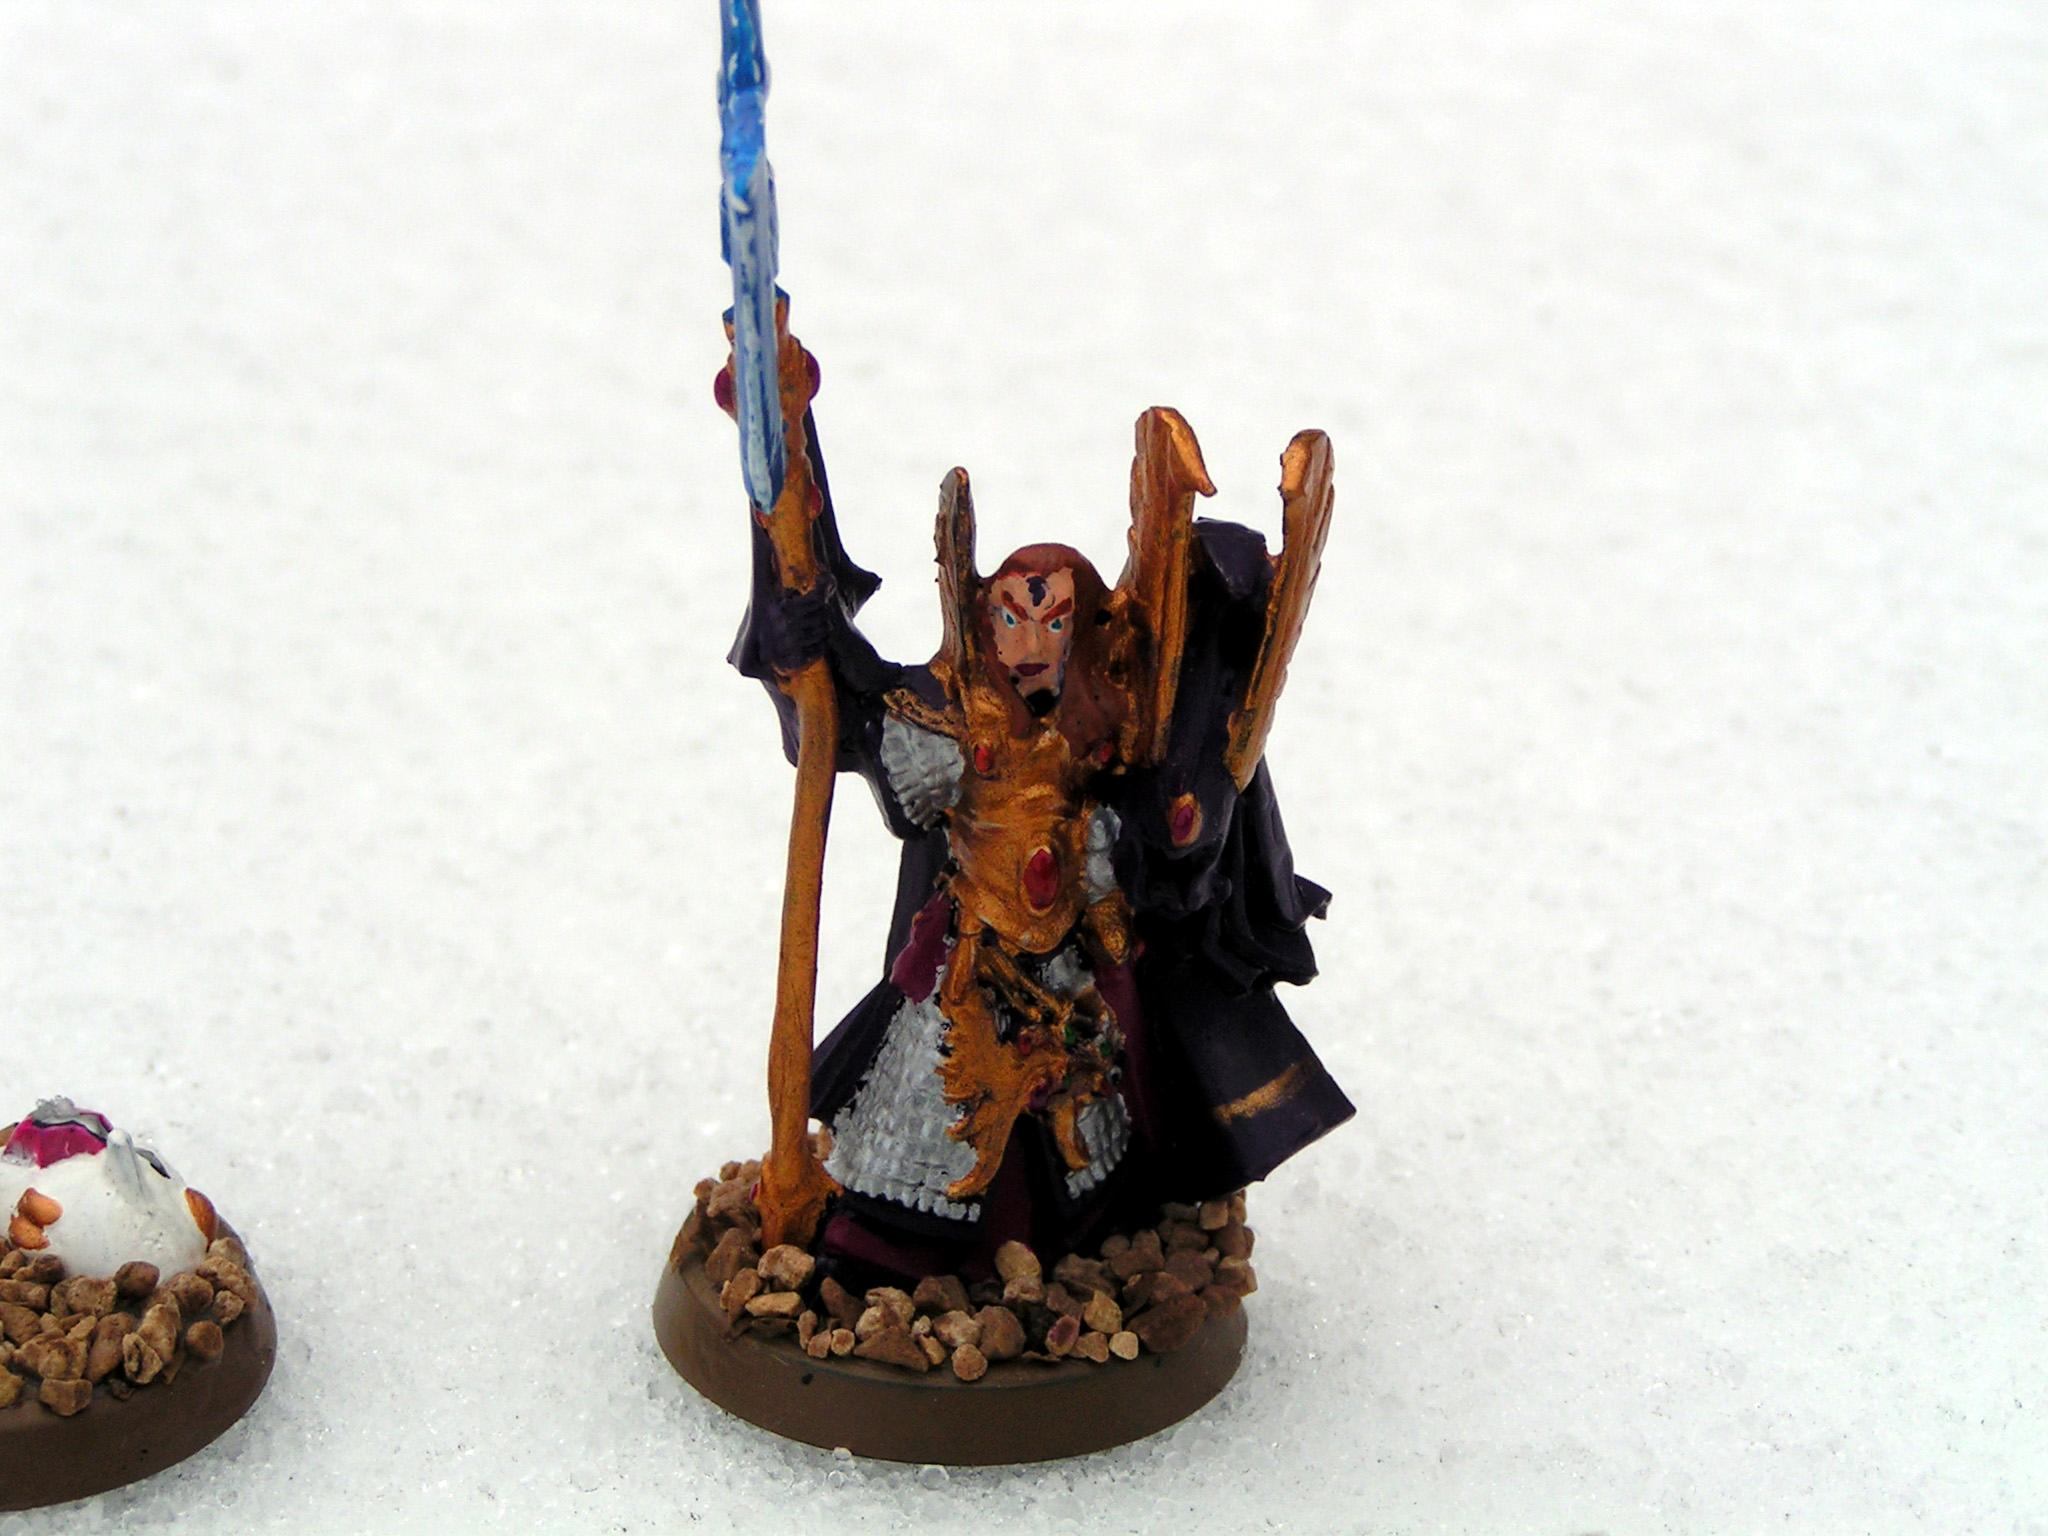 Conversion, Eldar, Farseer, Gyrinx, High Elves, Seer Council, Warlock